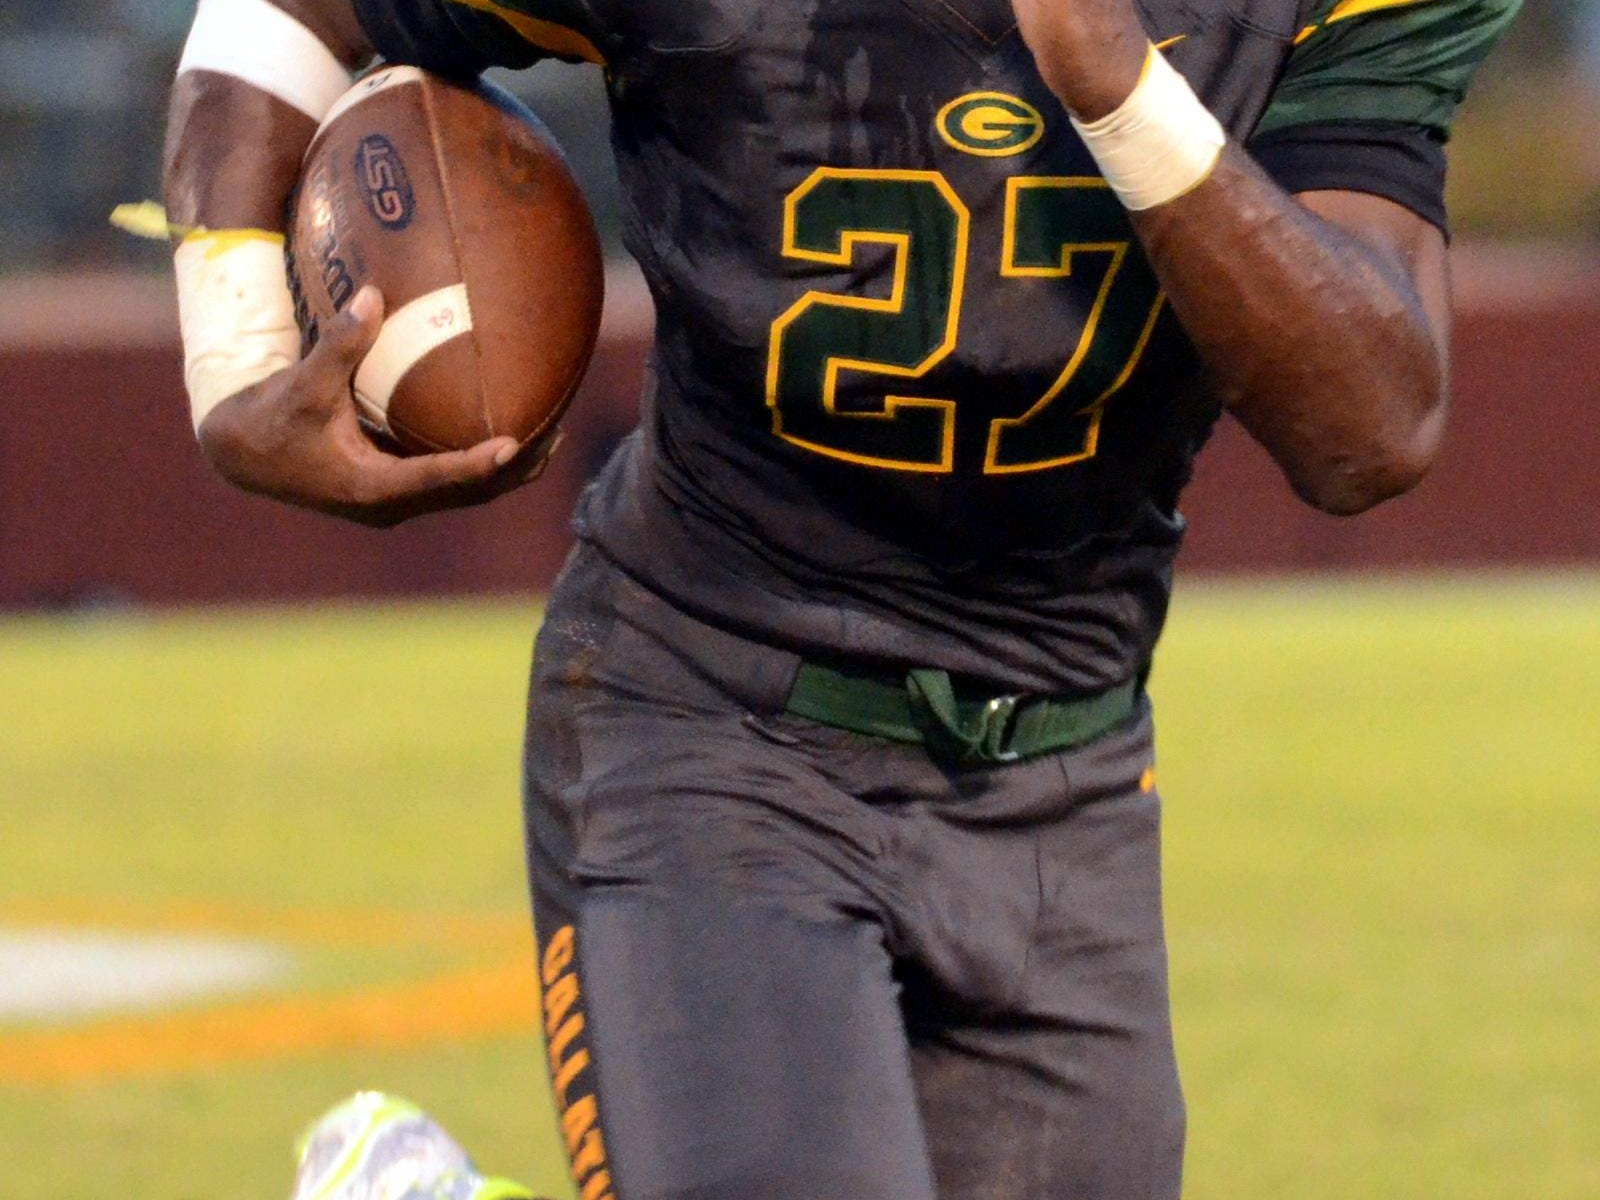 Gallatin High junior tailback Jordan Mason rushed for 169 yards on 20 carries in last Friday's 45-7 loss at Beech.